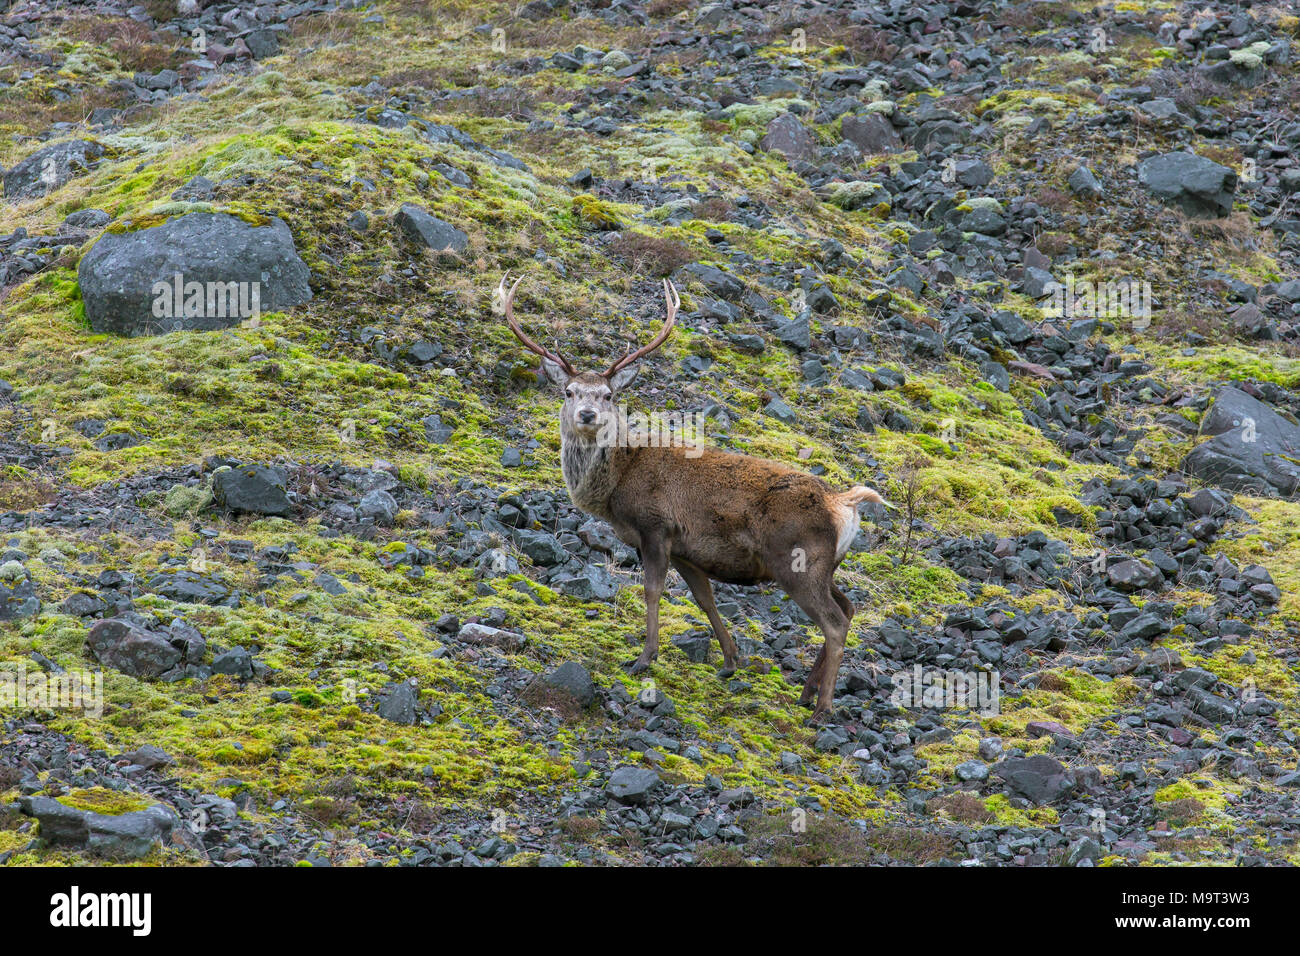 Red deer stag / male (Cervus elaphus) on mountain slope in the hills in winter in the Scottish Highlands, Scotland, UK Stock Photo